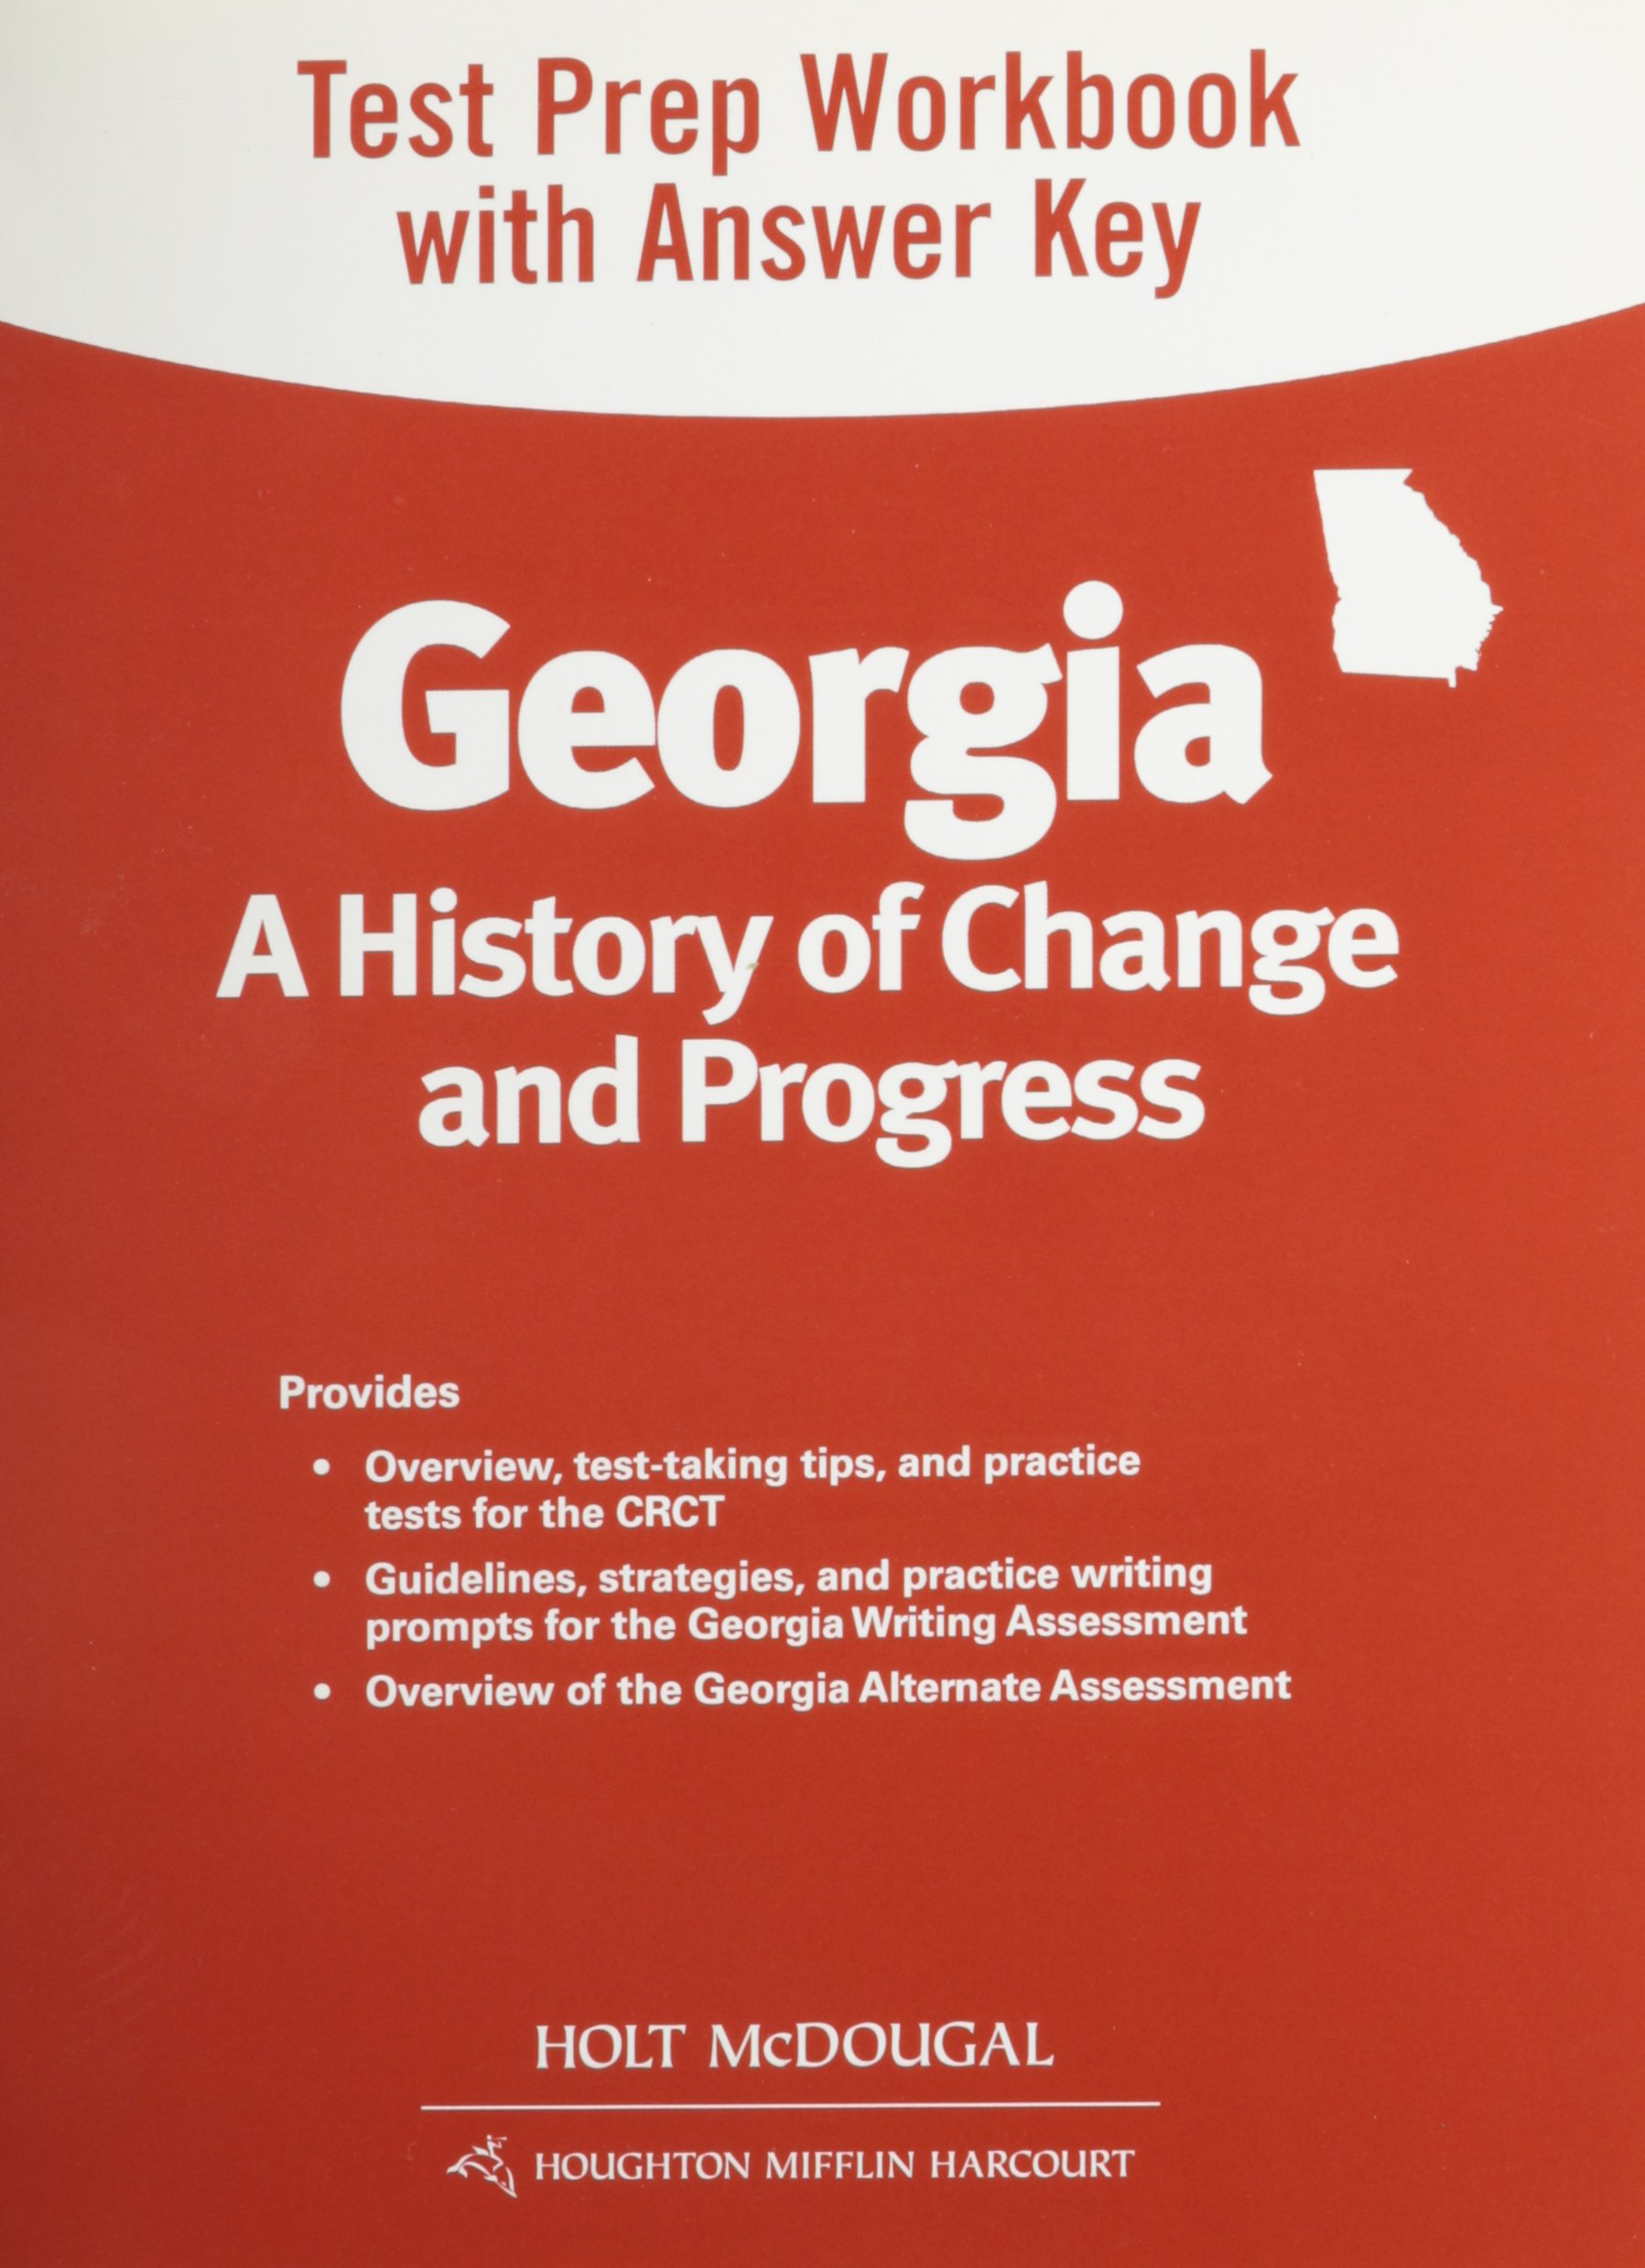 Download Holt McDougal Georgia: A History of Change and Progress Georgia: Test Prep Workbook PDF